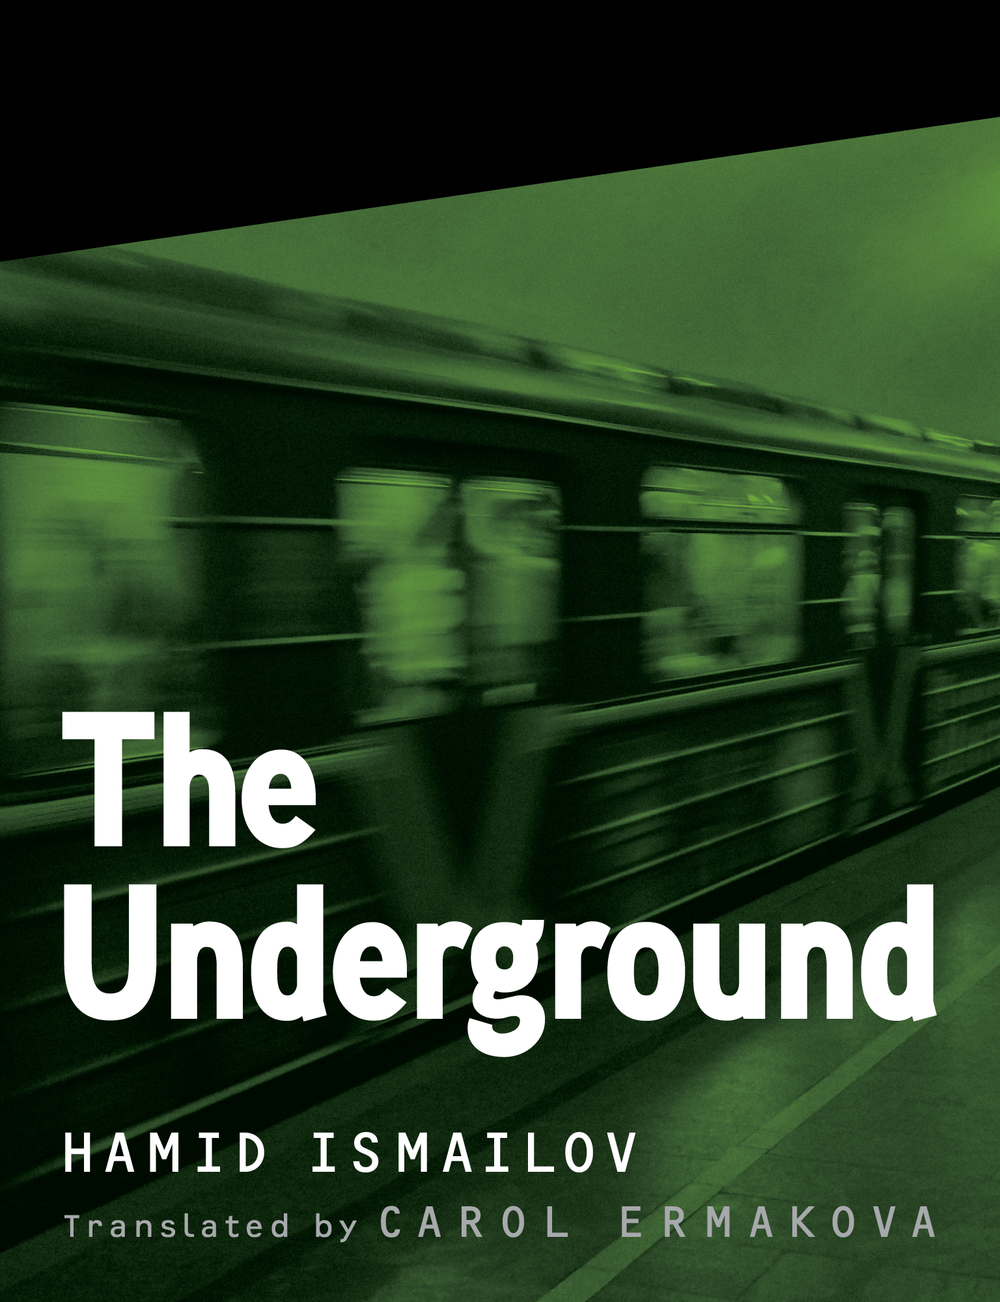 The-Underground-cover_1536x2000-Kindle.png